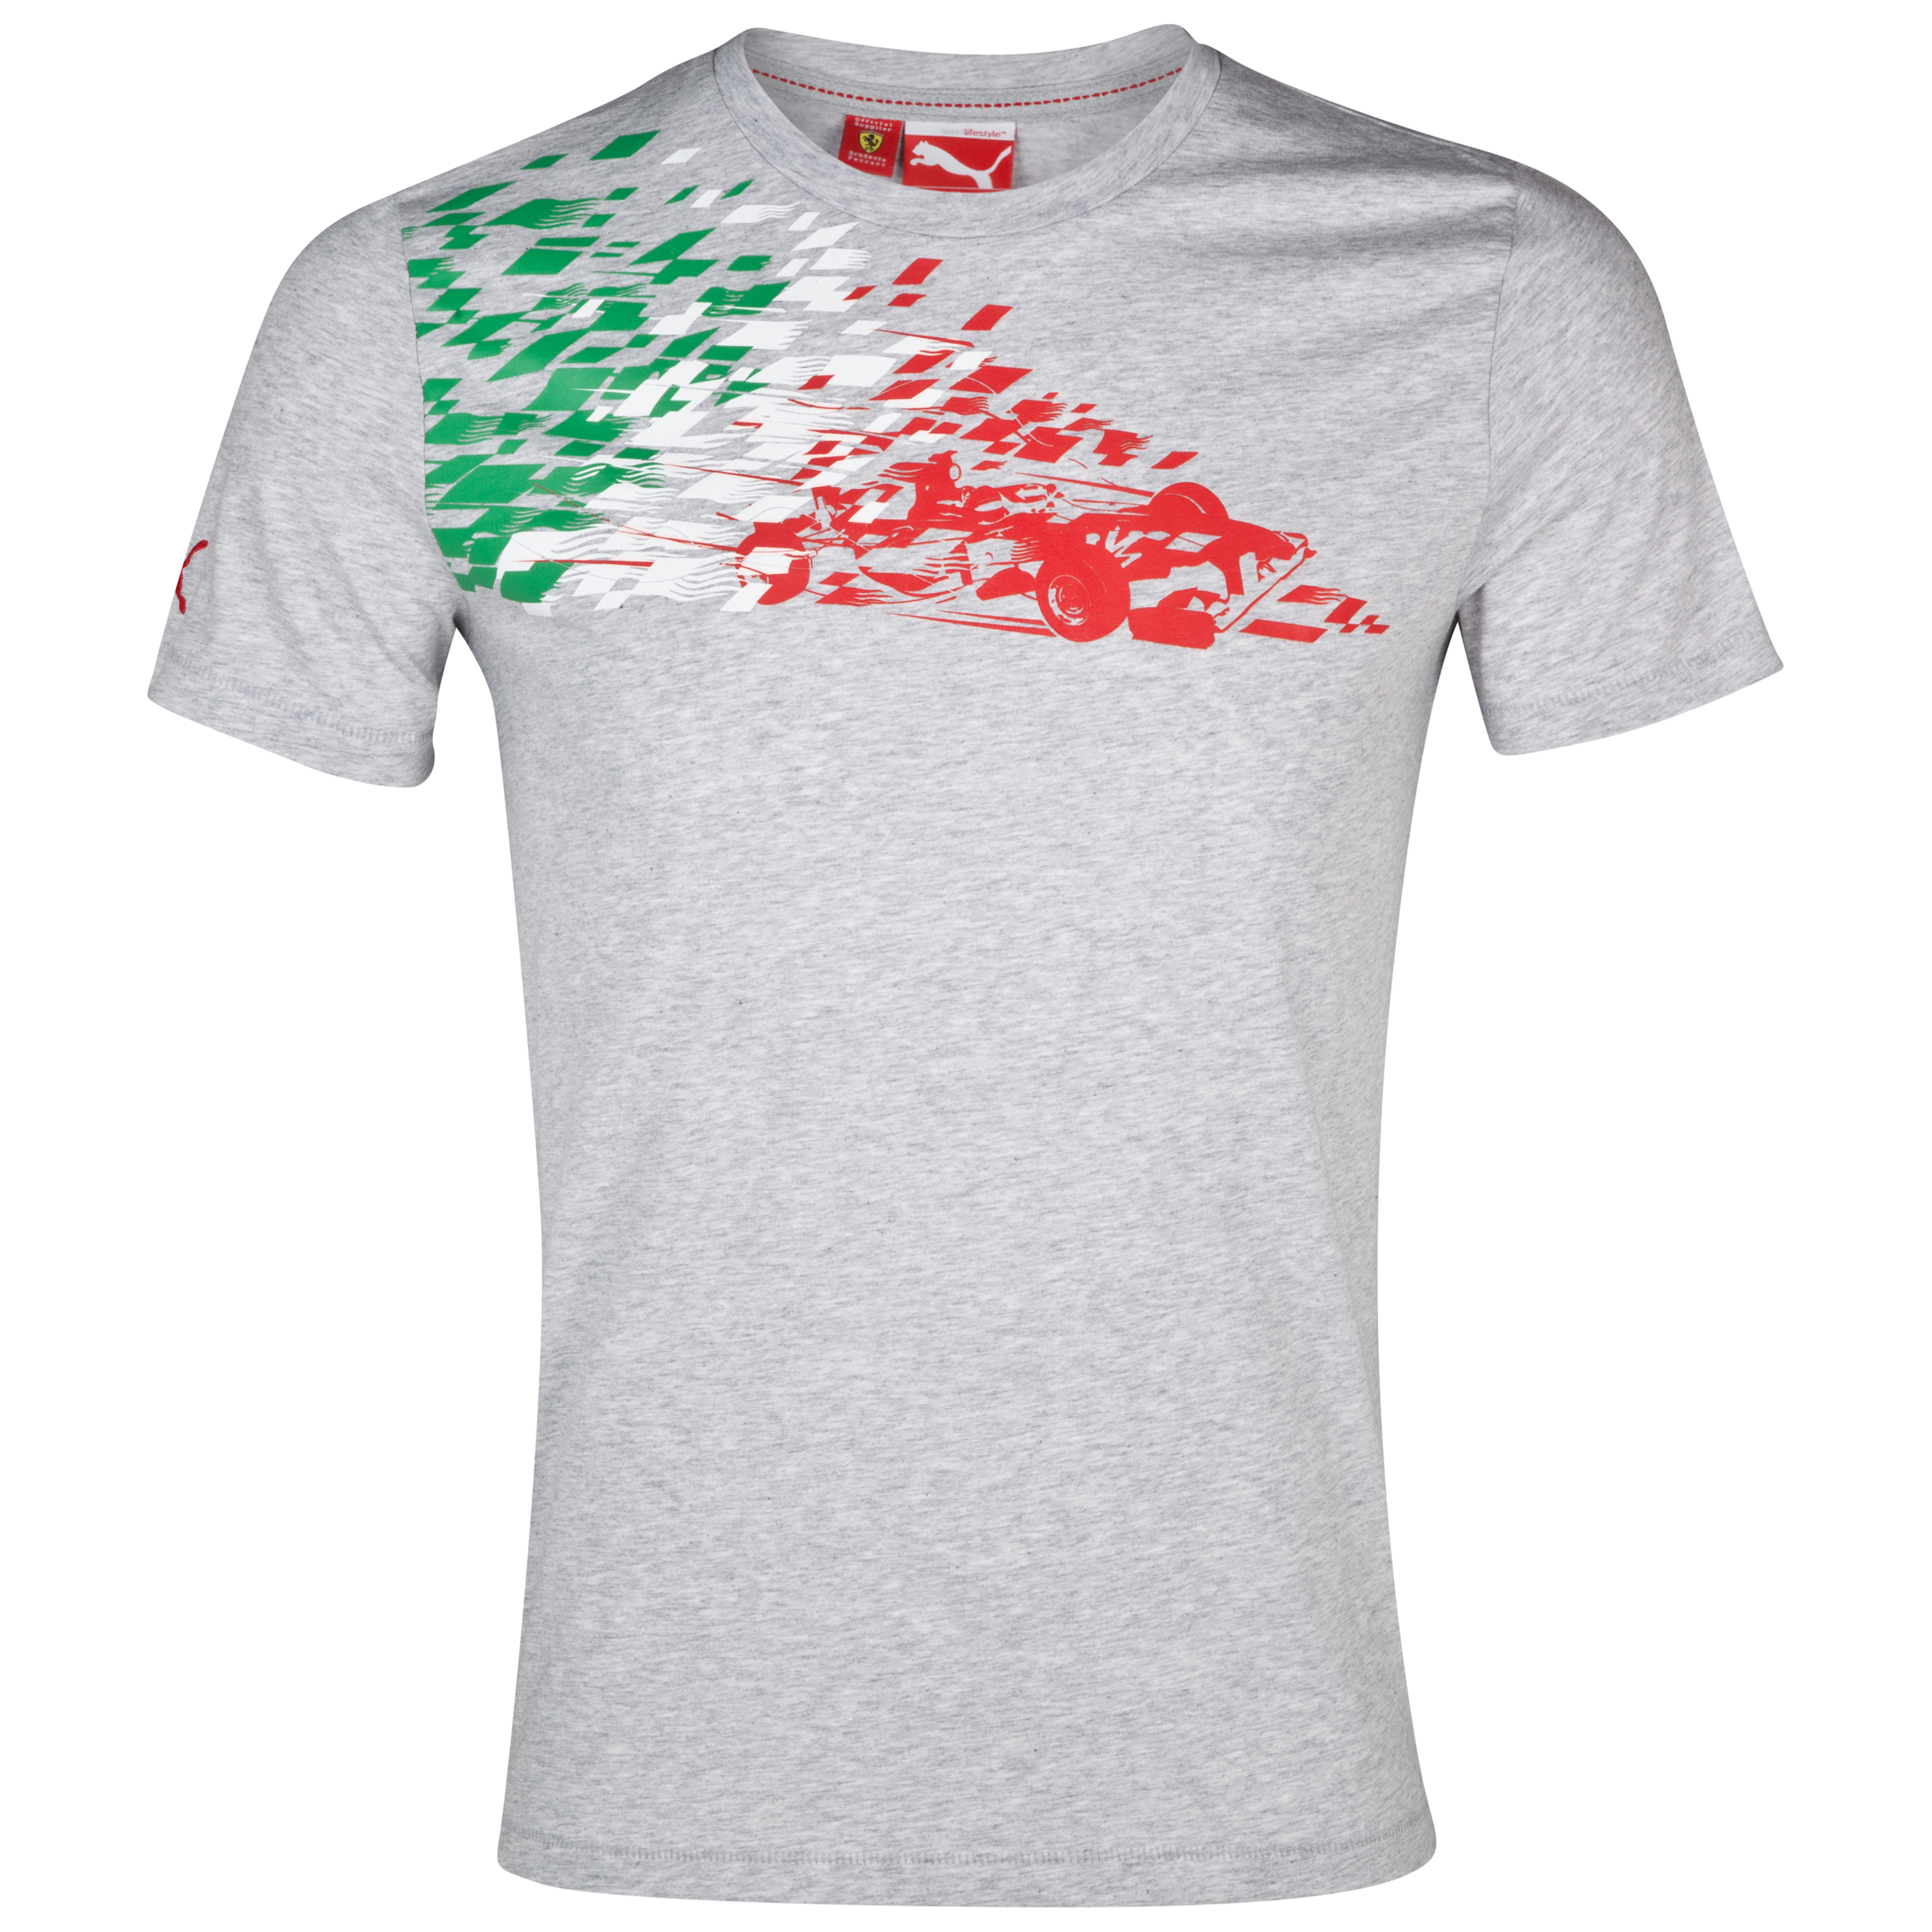 Scuderia Ferrari Scuderia Graphic T-Shirt - Grey